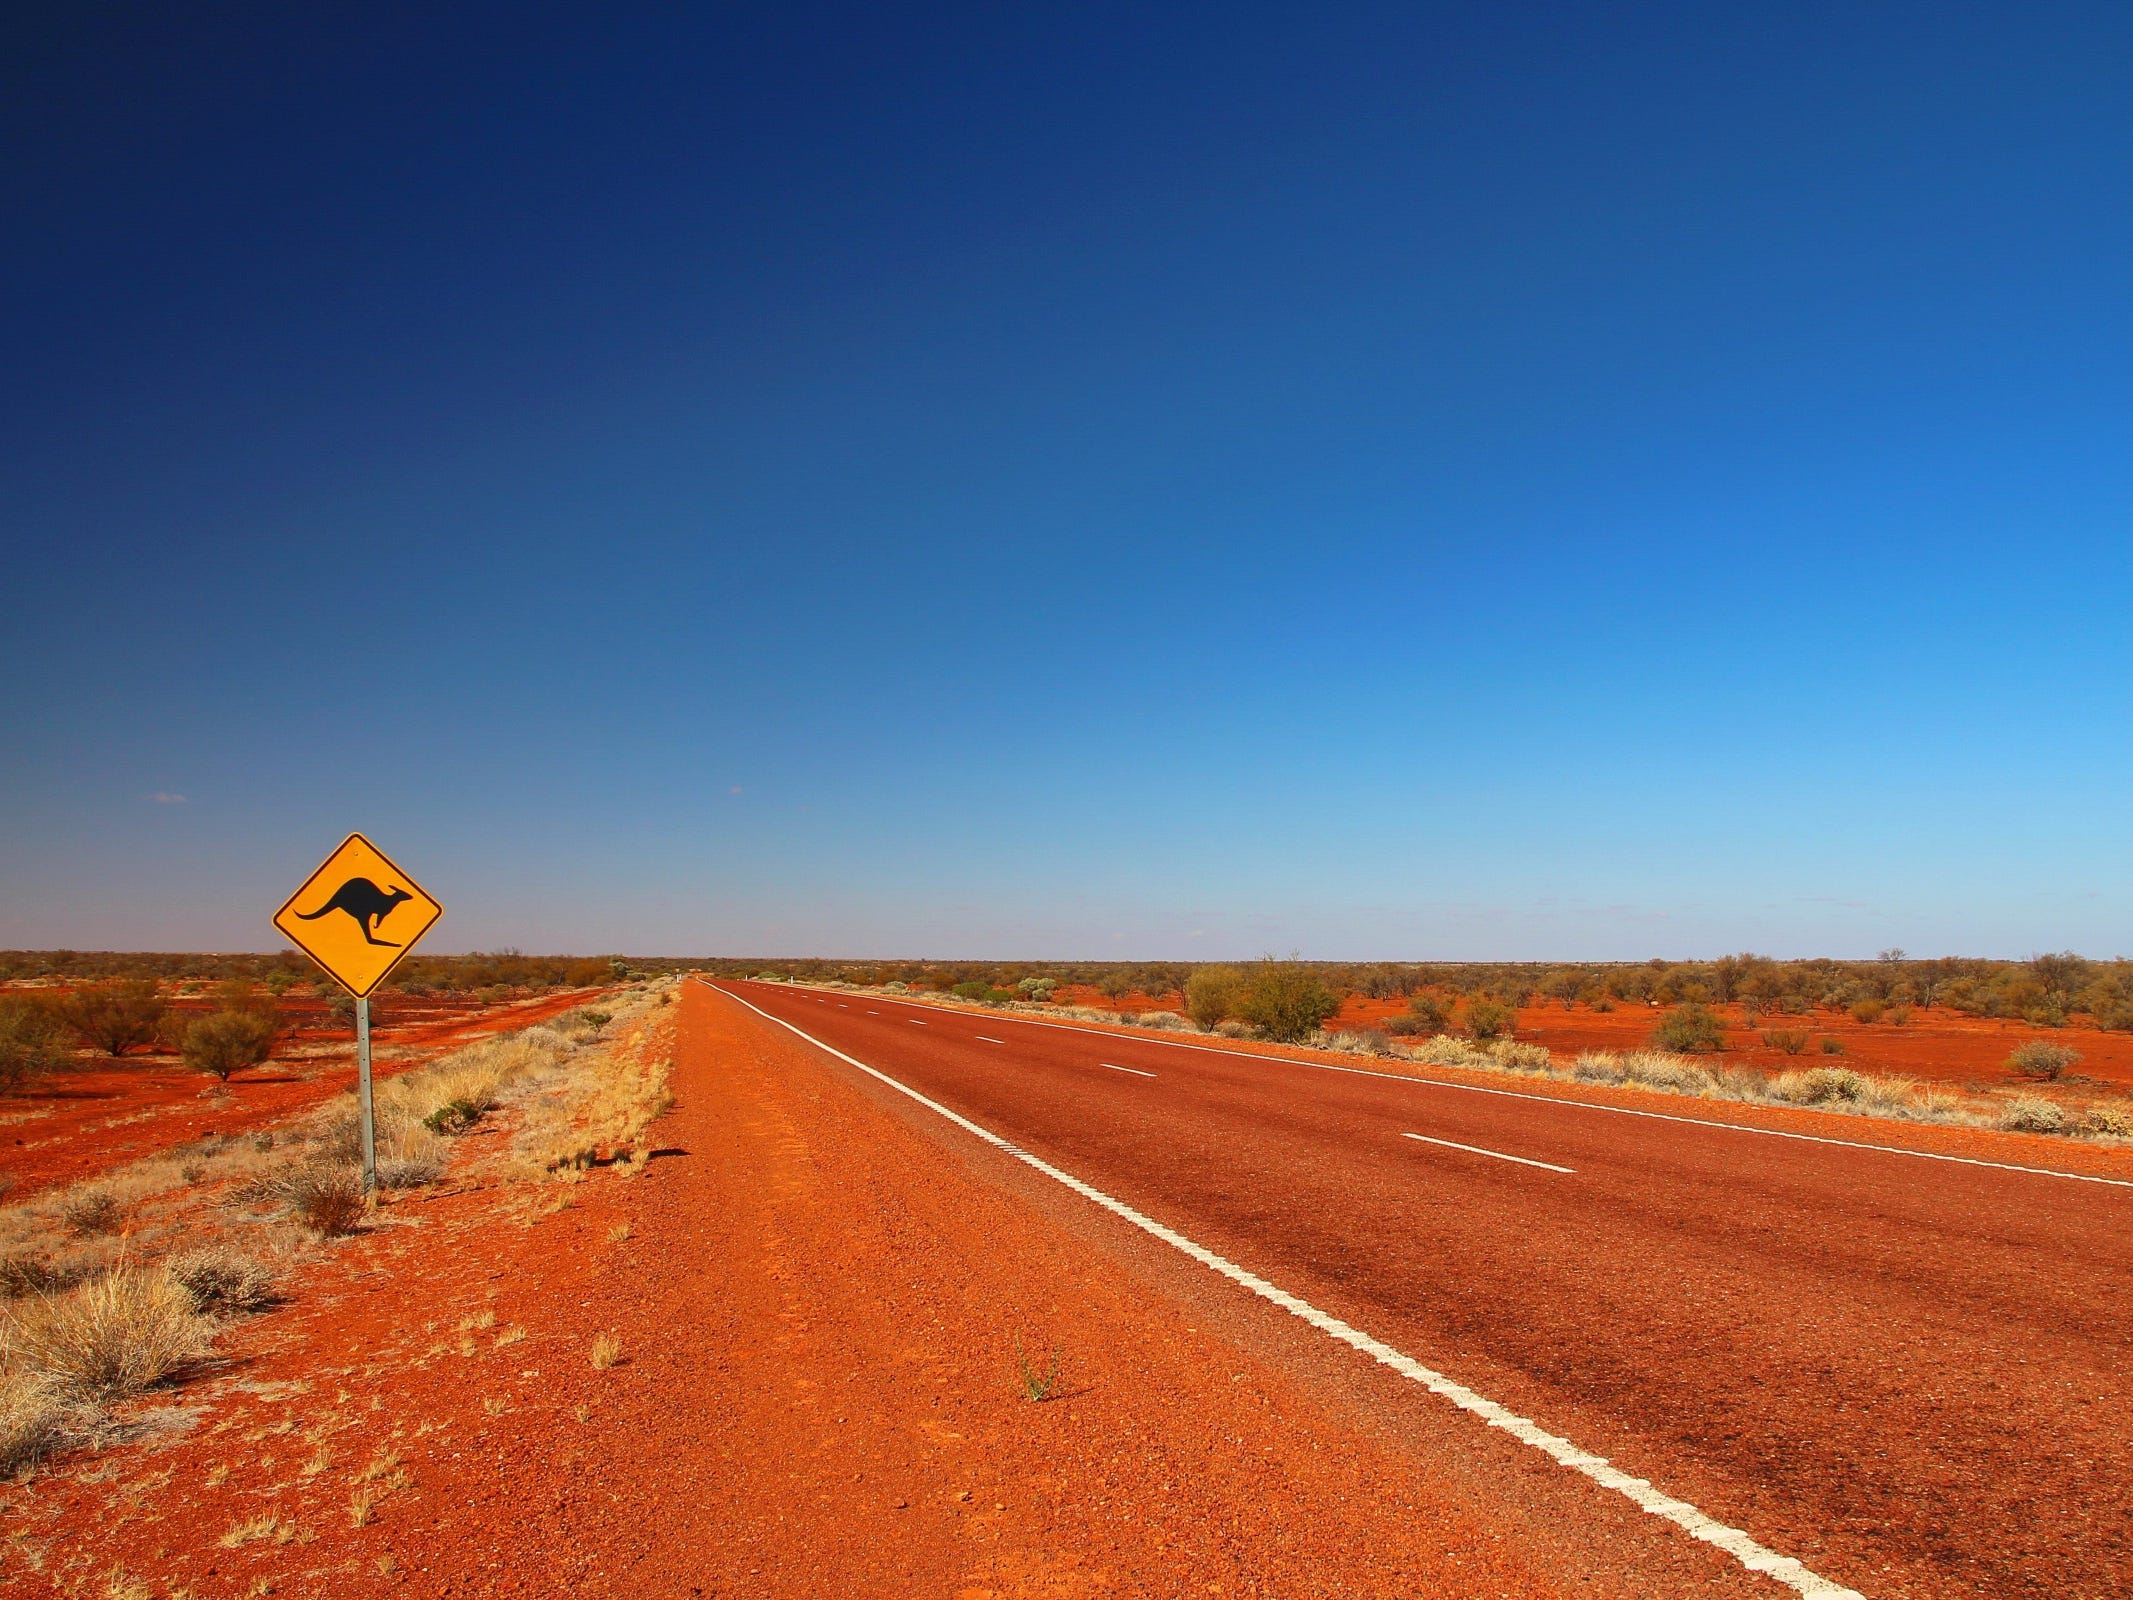 No. 4 on the top 10 list of regions to visit in 2019 is the Red Center, Australia. Be transformed by the epic landscapes, mesmerizing colors and contact with the spiritual culture of Australia's Aboriginal custodians of the Red Center.